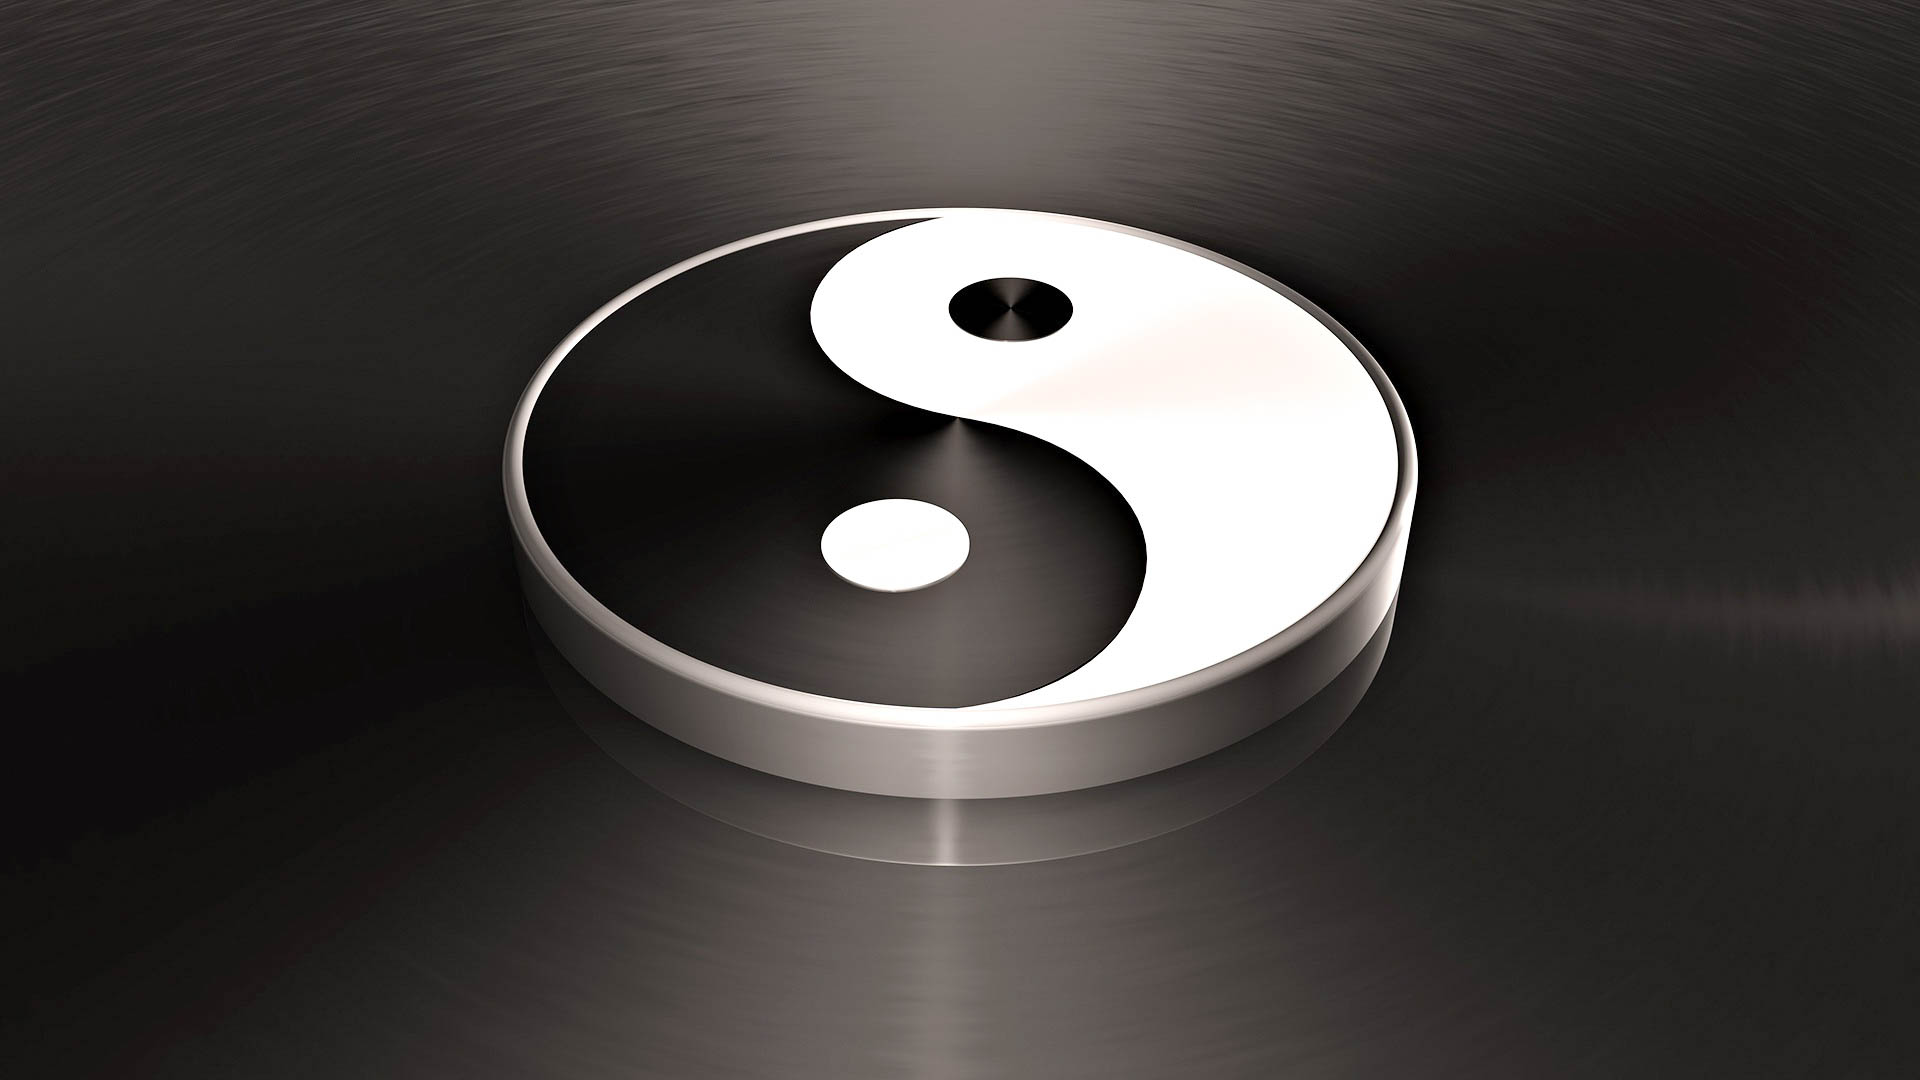 Yin Yang Some Awesome Hd Wallpapers Desktop Backgrounds High